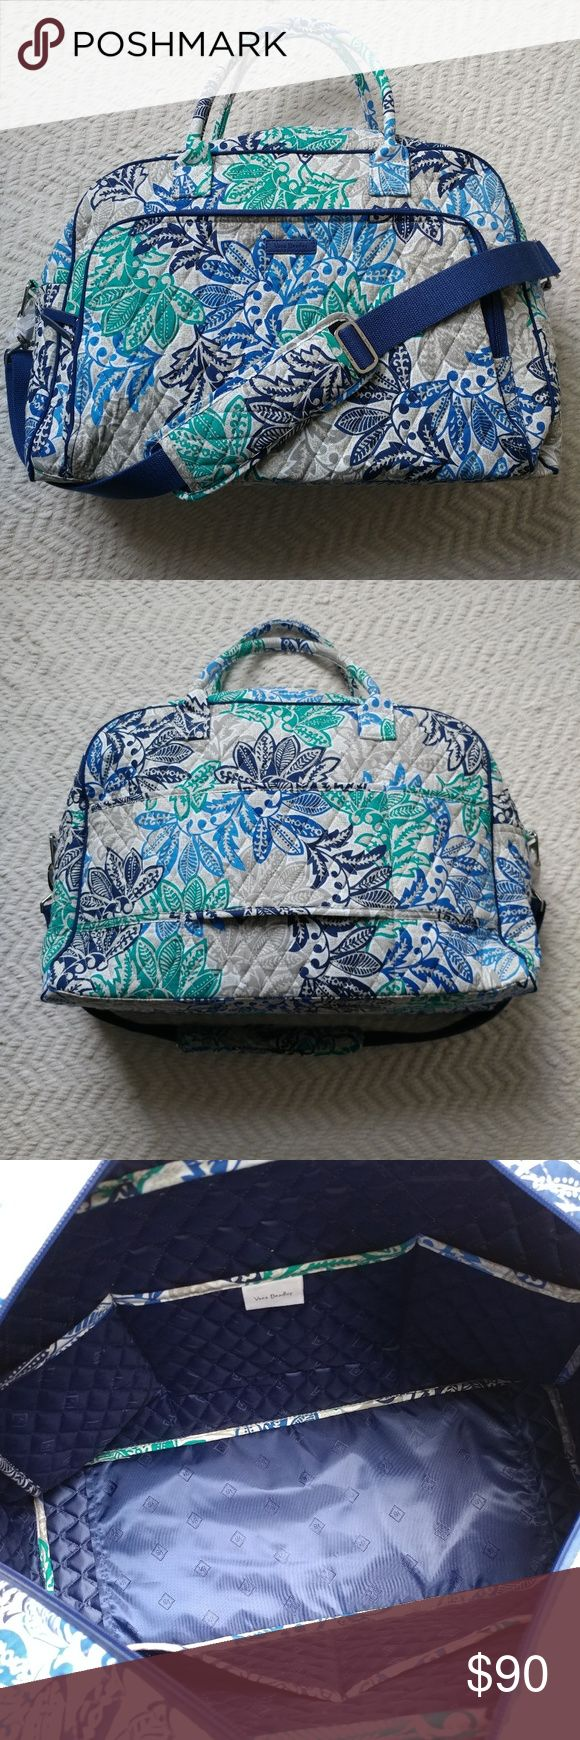 """Vera Bradley Weekender Bag (pattern:  Santiago) Perfect overnight or carry-all bag that is brand new with tags!! Roomy interior with 5 pockets. Exterior has one large zip pocket and 2 smaller open pockets. Exterior also has a large loop to loop over the handle of rolling luggage and has an adjustable shoulder strap that can be removed. Measurments are: Length 19"""" Height 14"""" Width 8""""  🌻Check out my daughter's closet too! @mrwidmer Vera Bradley Bags Travel Bags"""